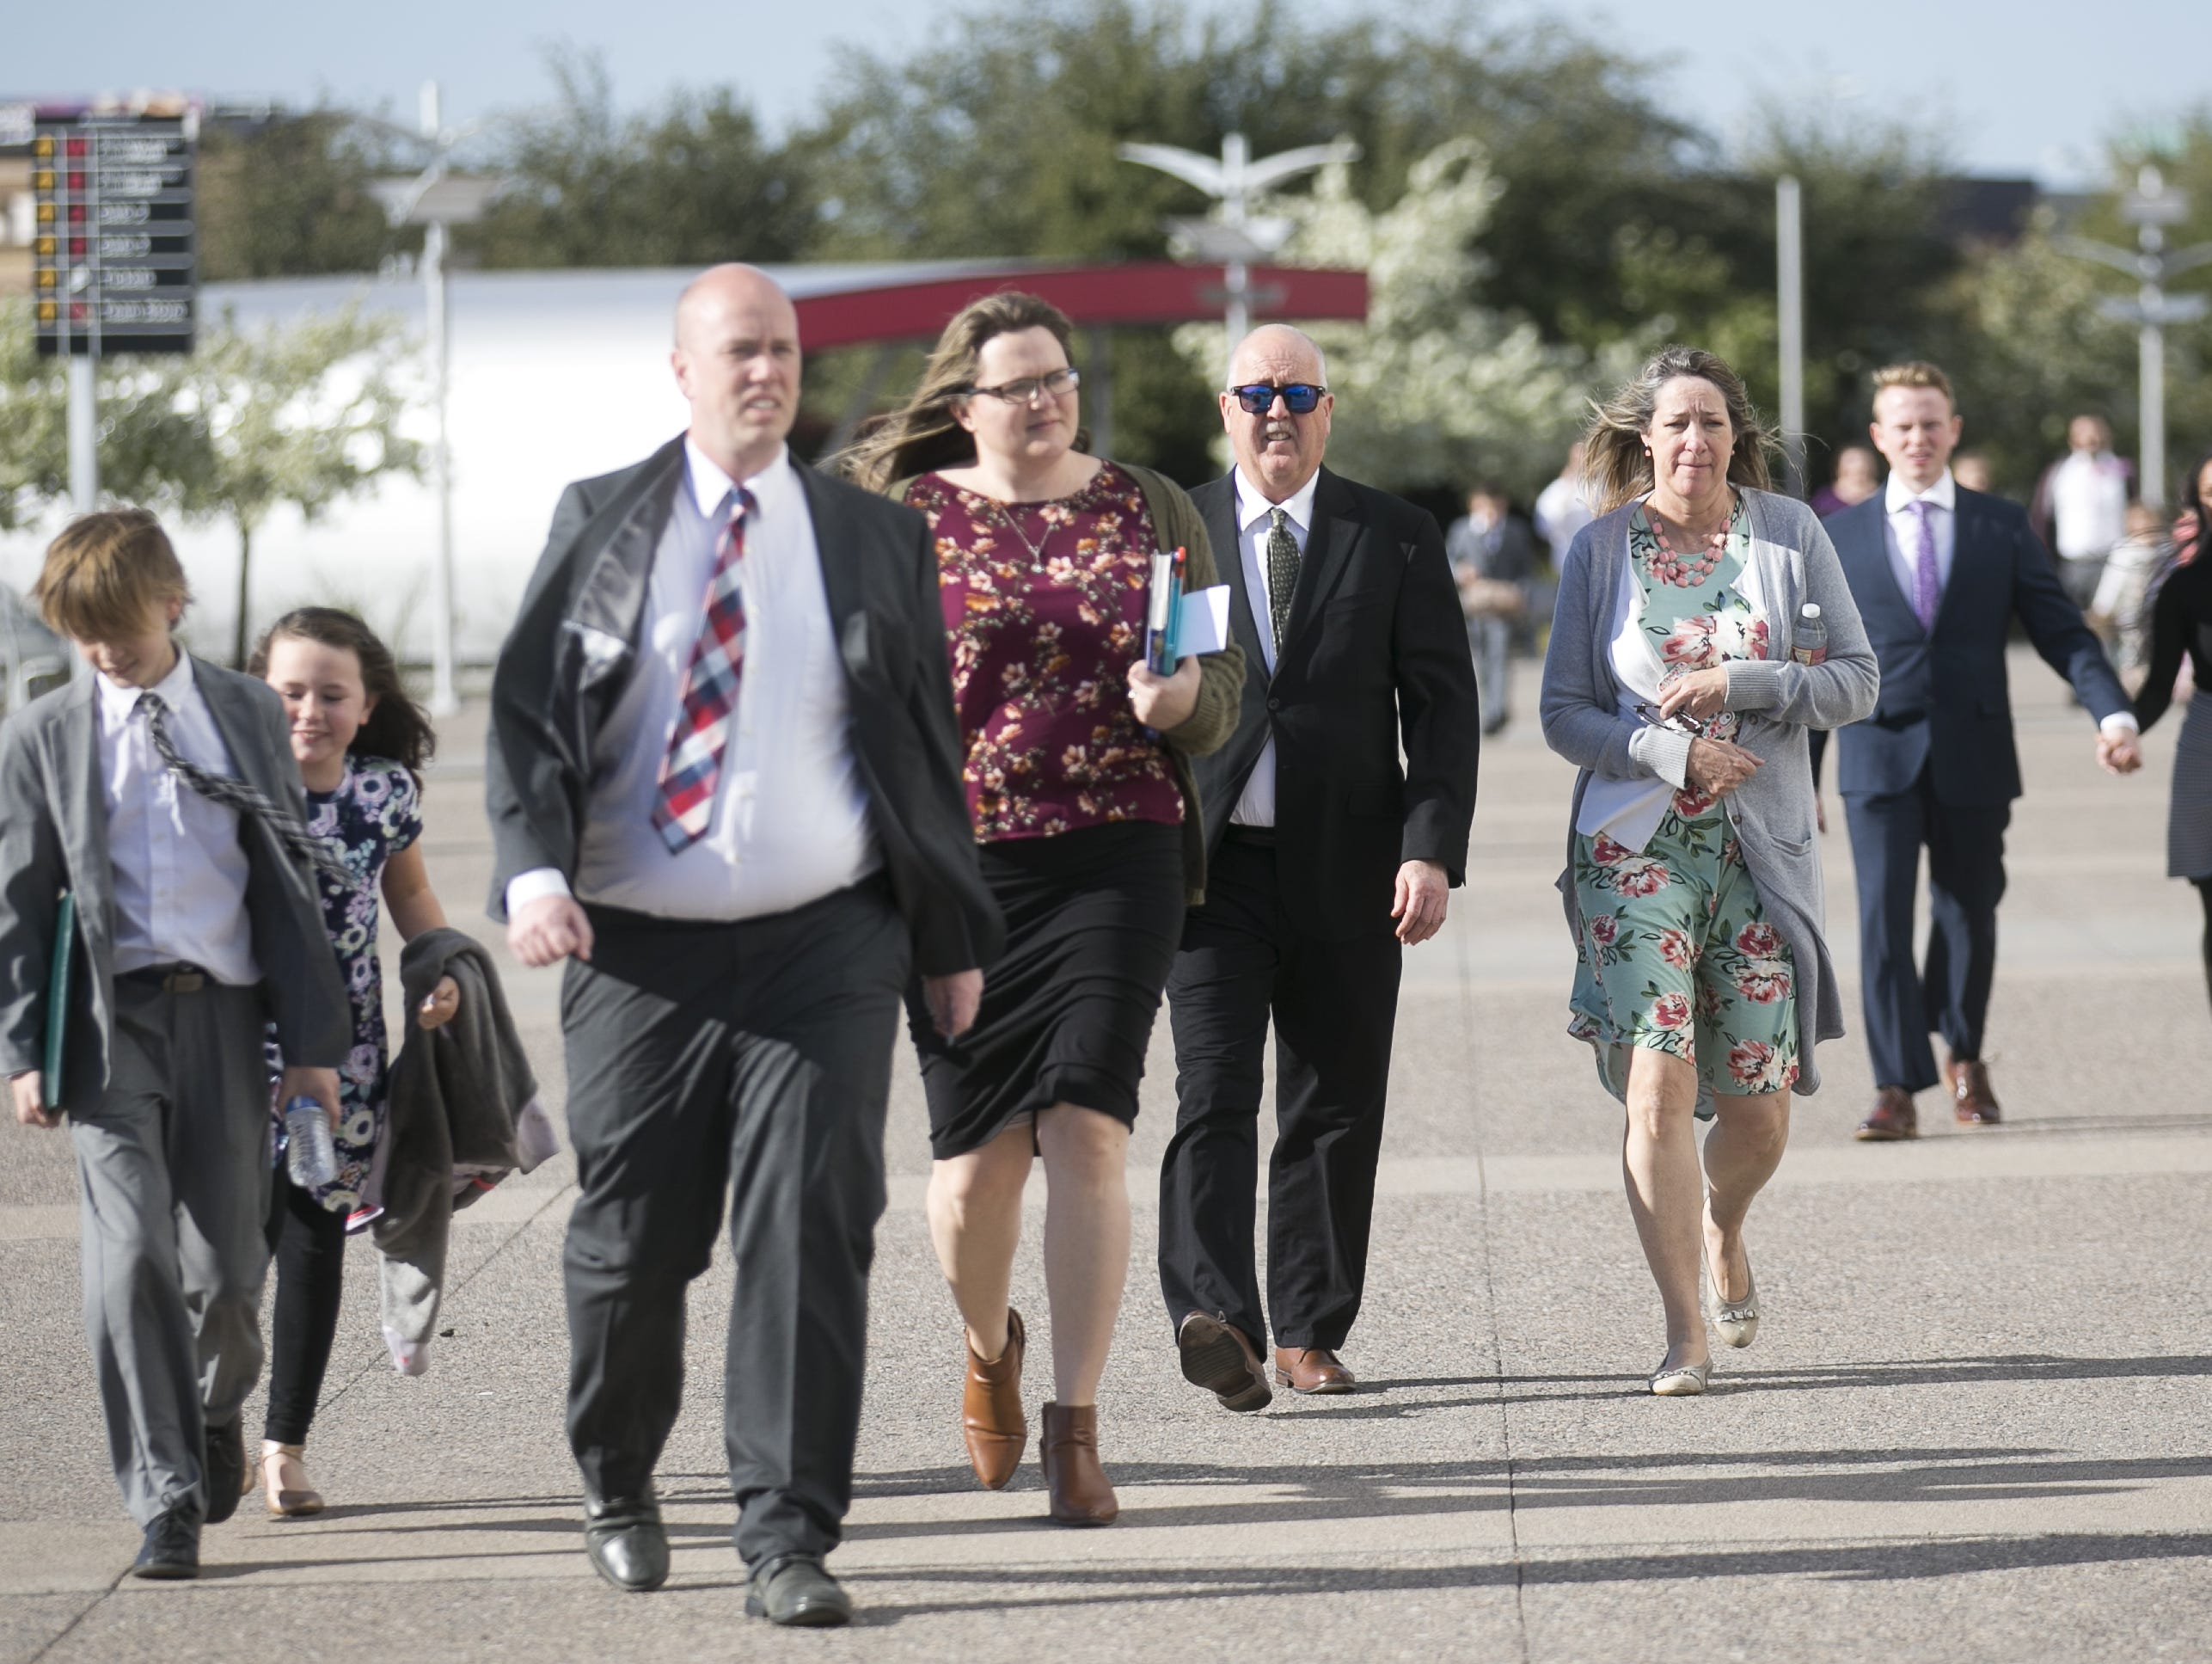 Members of the Church of Jesus Christ of Latter-day Saints arrive at State Farm Stadium to hear church President Russell Nelson speak for a devotional in Glendale, Arizona on Sunday, Feb. 10, 2019.